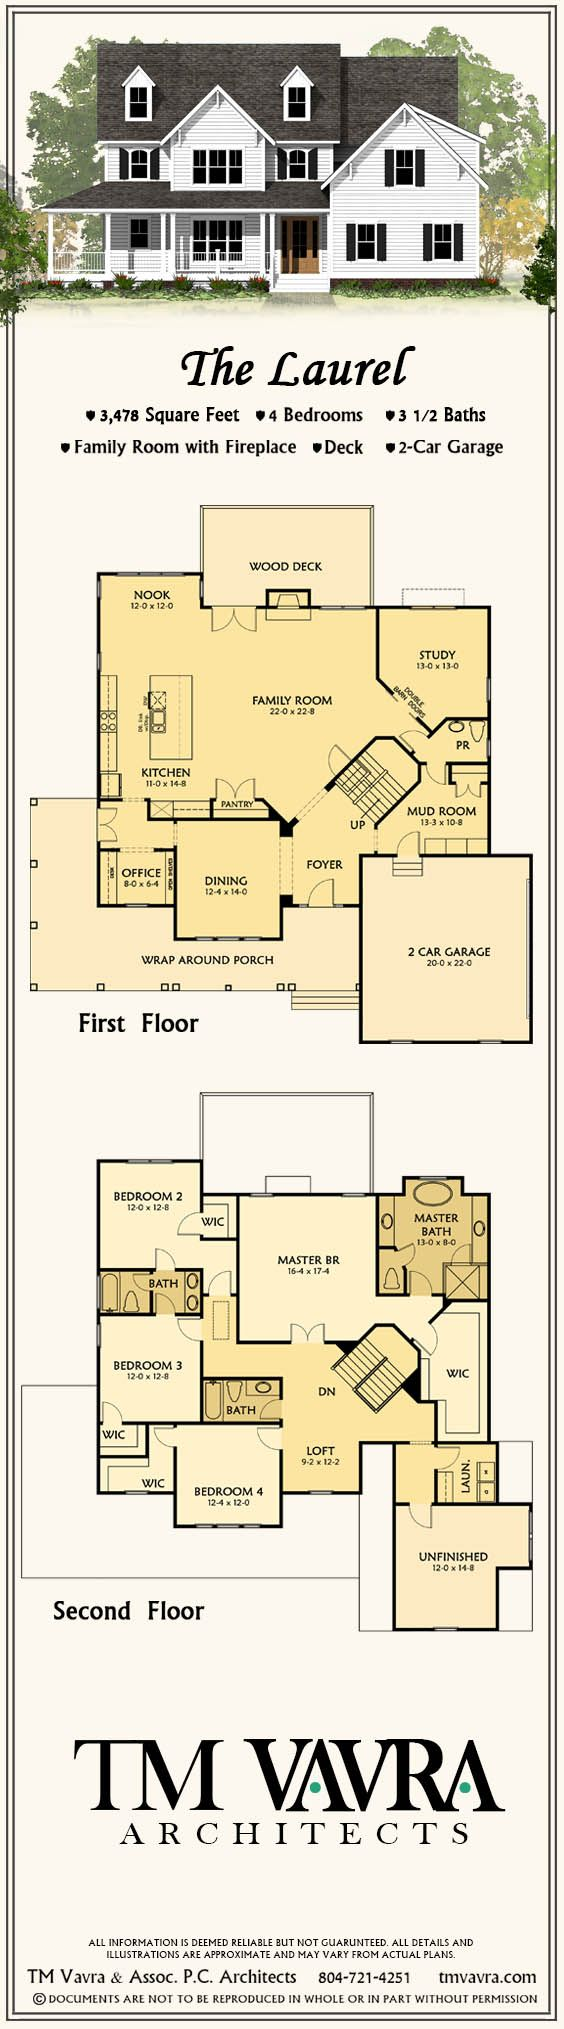 The Laurel house plan: 3,478 square feet, 4 bedrooms, 3.5 baths, family room with fireplace, deck, & 2-car garage (Plans available for purchase)